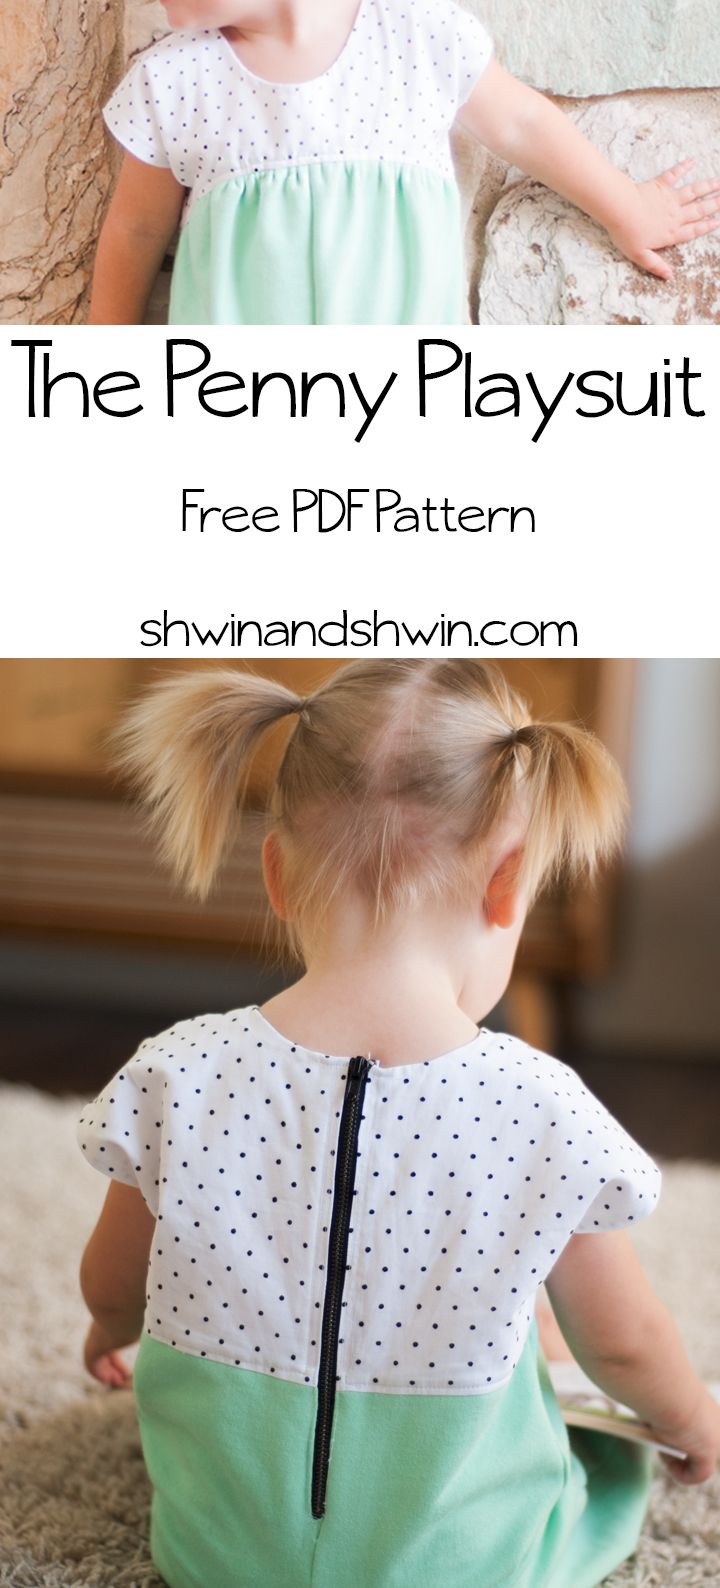 145 Best Images About Baby Clothing Sewing Tutorials On Pinterest